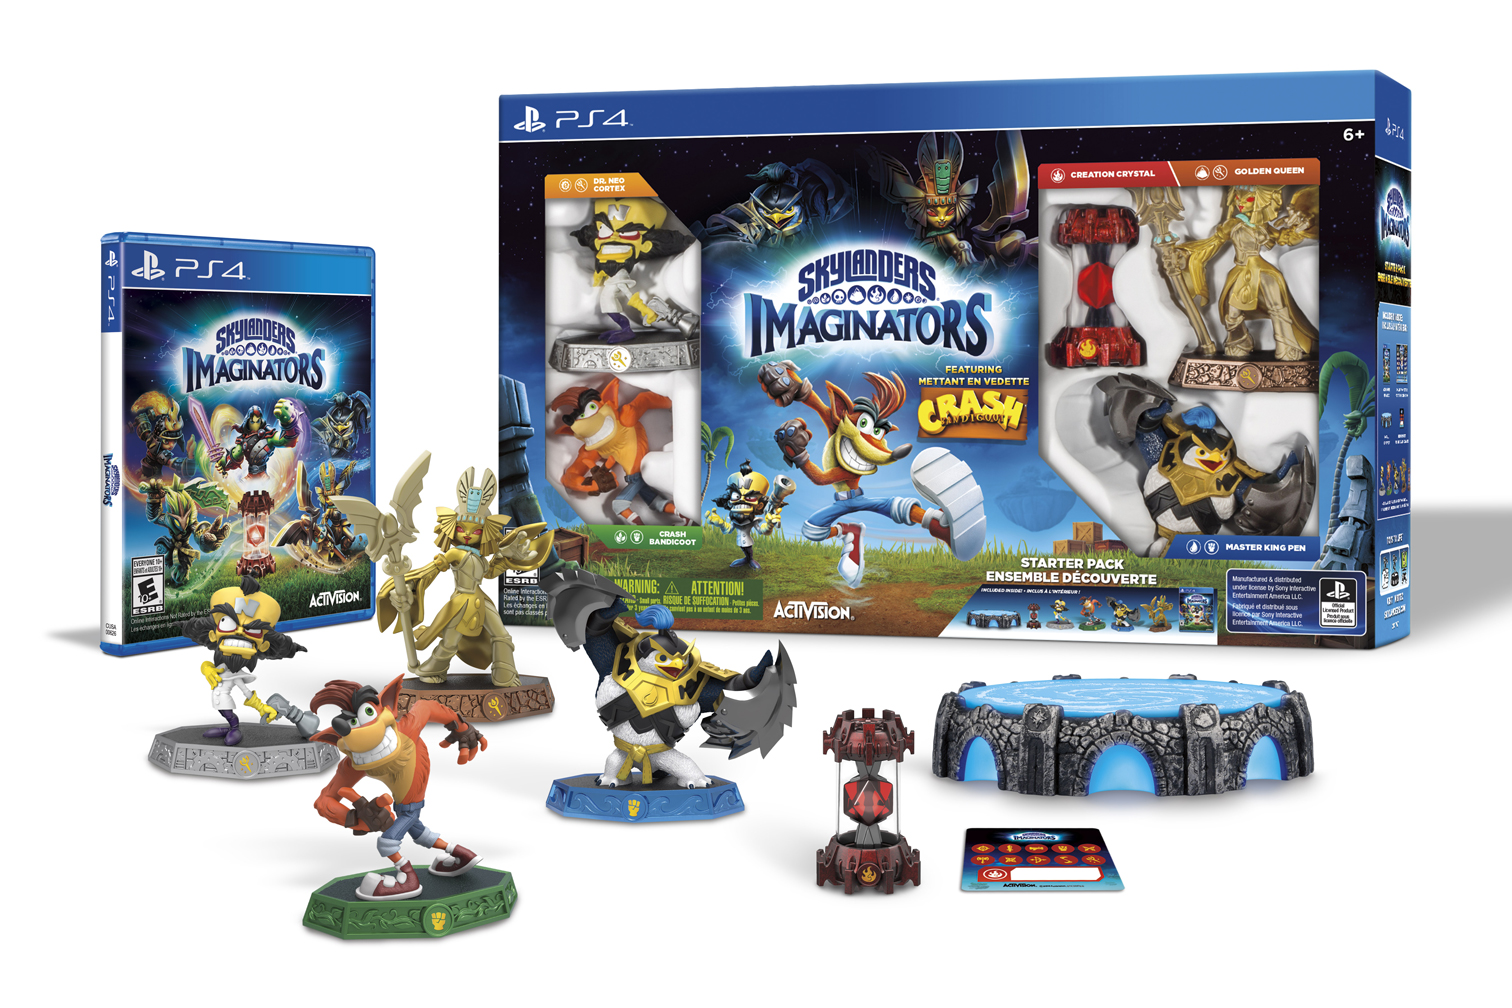 Skylanders Imaginators - Crash Bandicoot Edition Contents